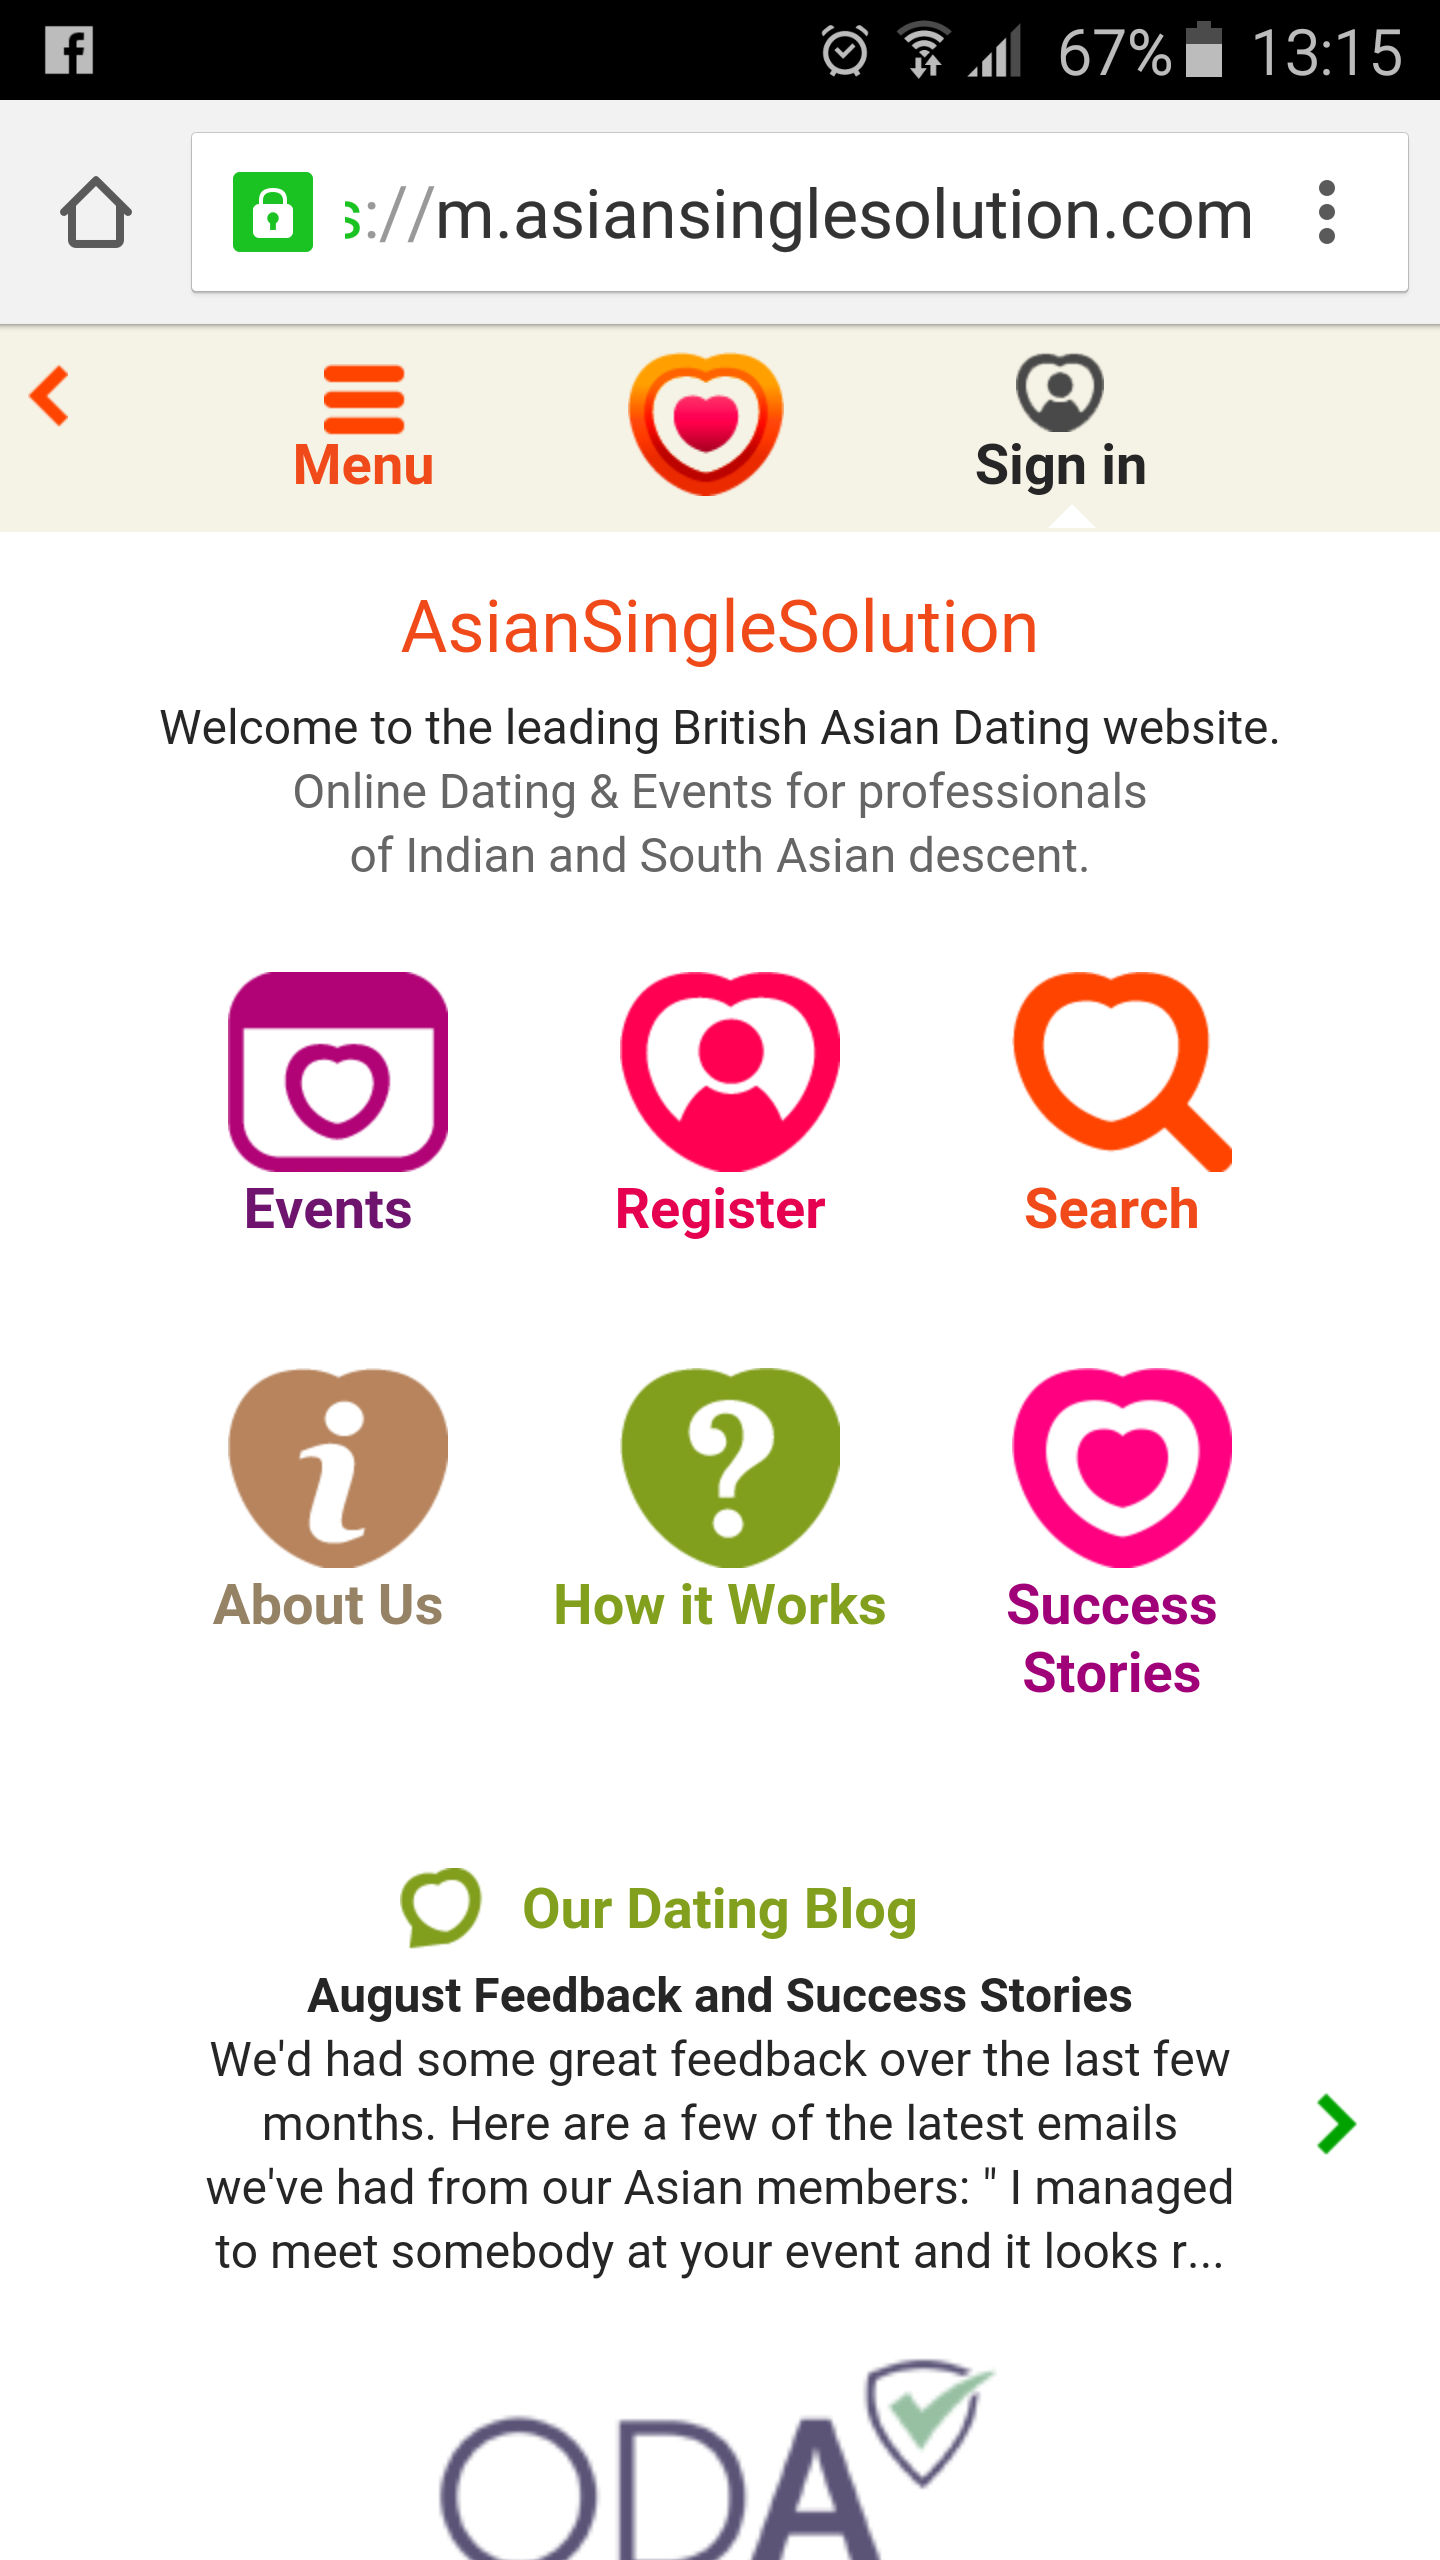 addieville asian dating website Wayne nobe is 59 years old and was born on 00/00/1959 currently, he lives in addieville, il his ethnicity is asian american, whose political affiliation is currently a registered republican party and religious views are listed as shinto.